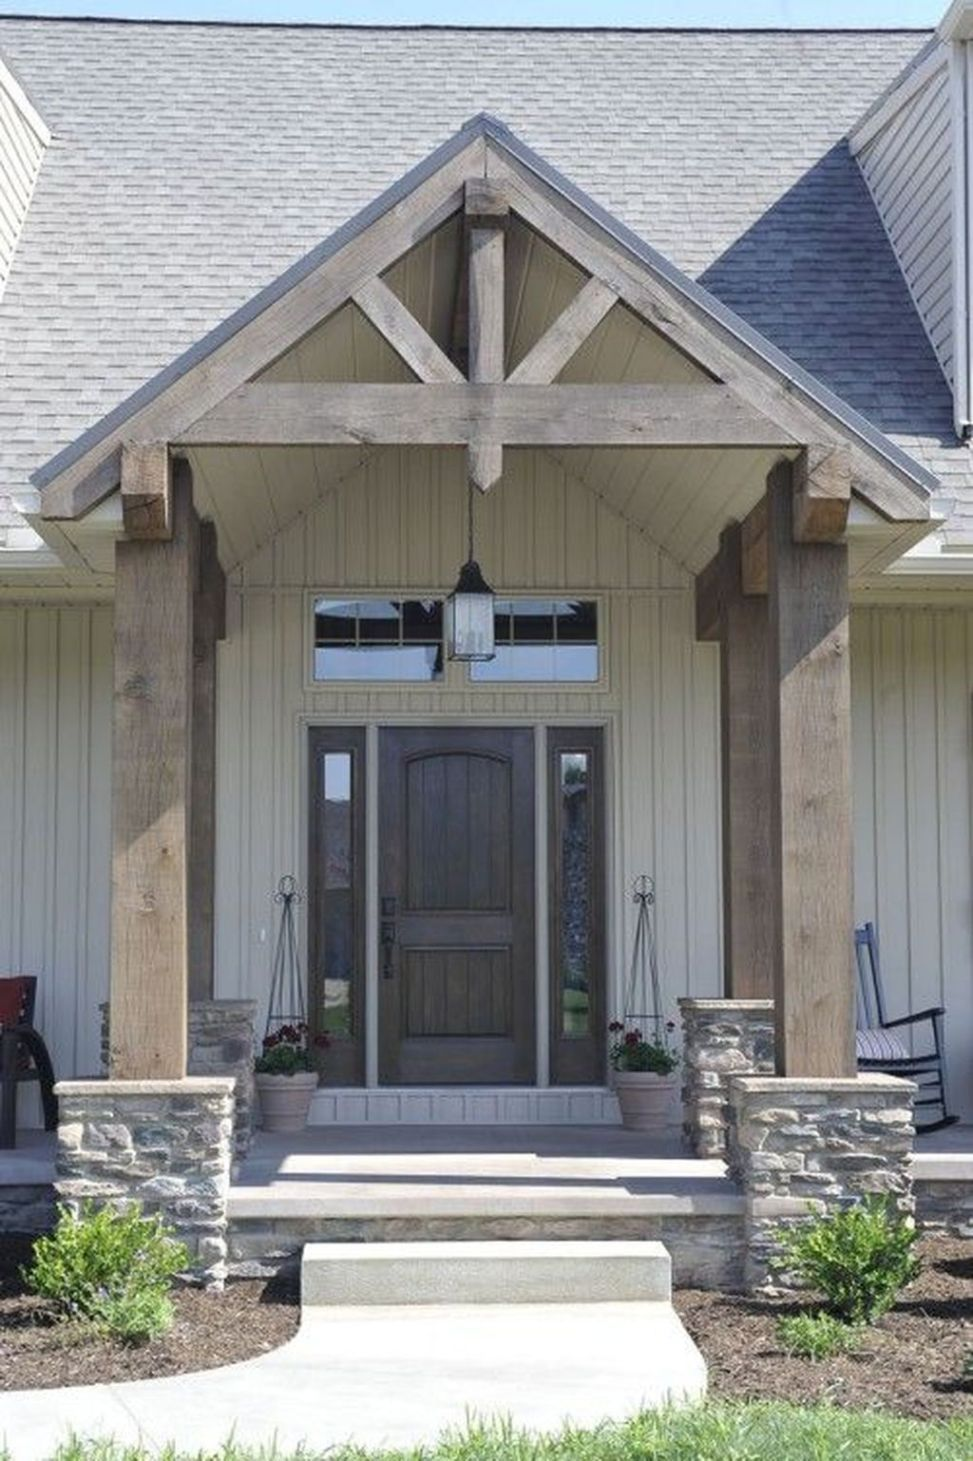 Gable Front Porch Decorating Ideas In 2020 Gable Roof Design Front Porch Design Farmhouse Front Porches